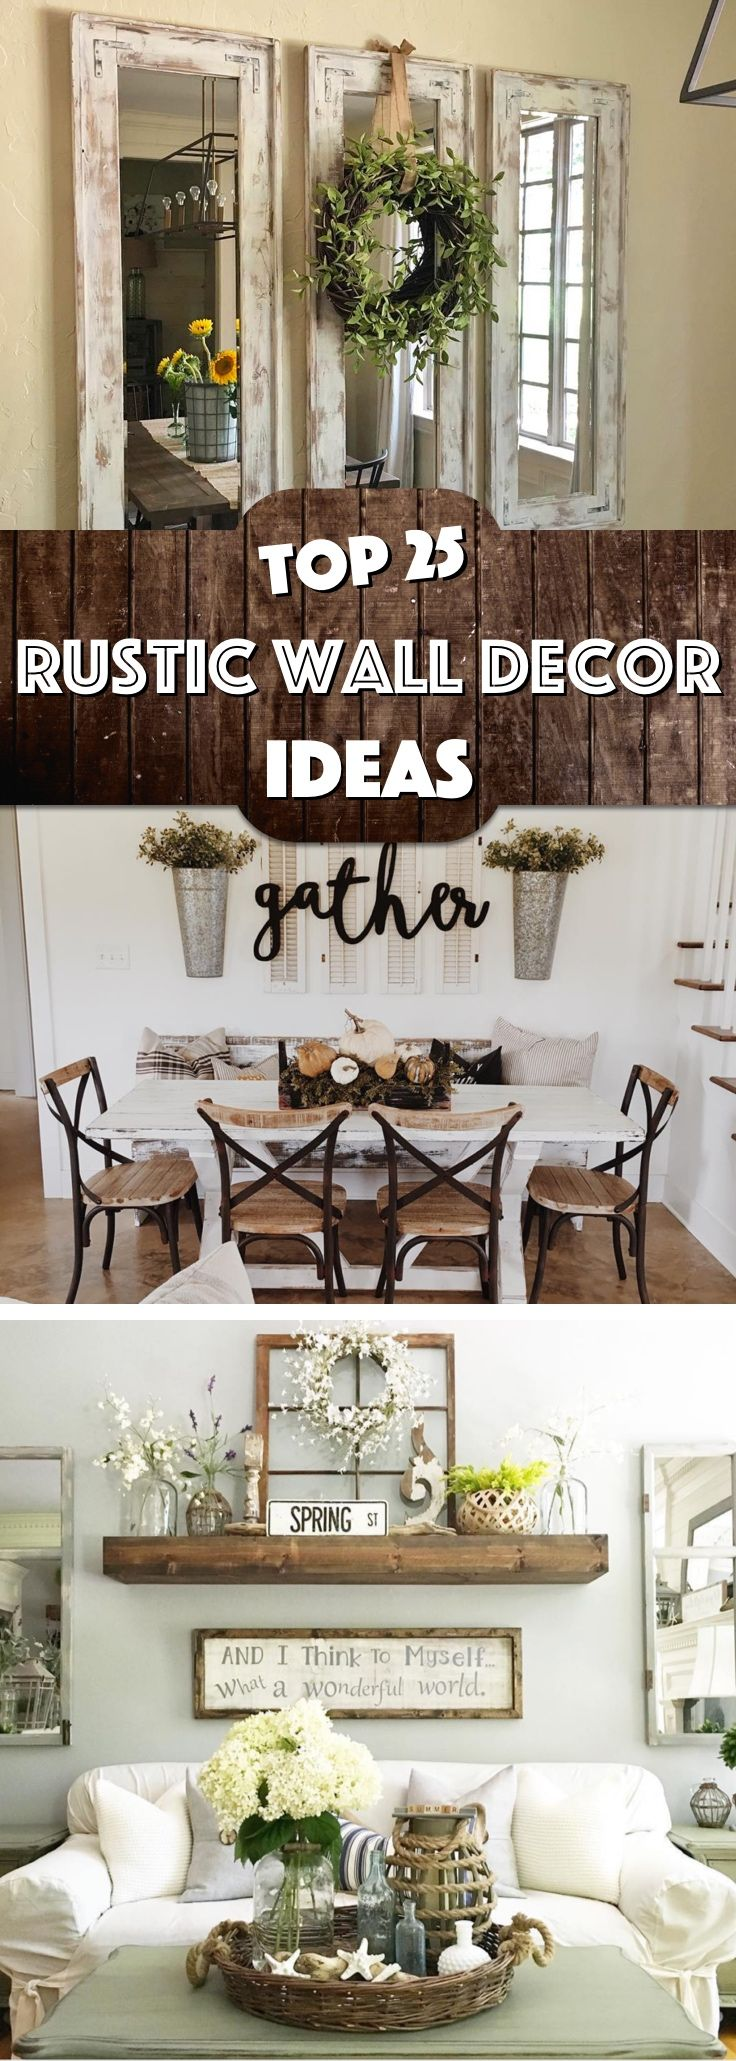 must try rustic wall decor ideas featuring the most amazing intended imperfections also rh pinterest